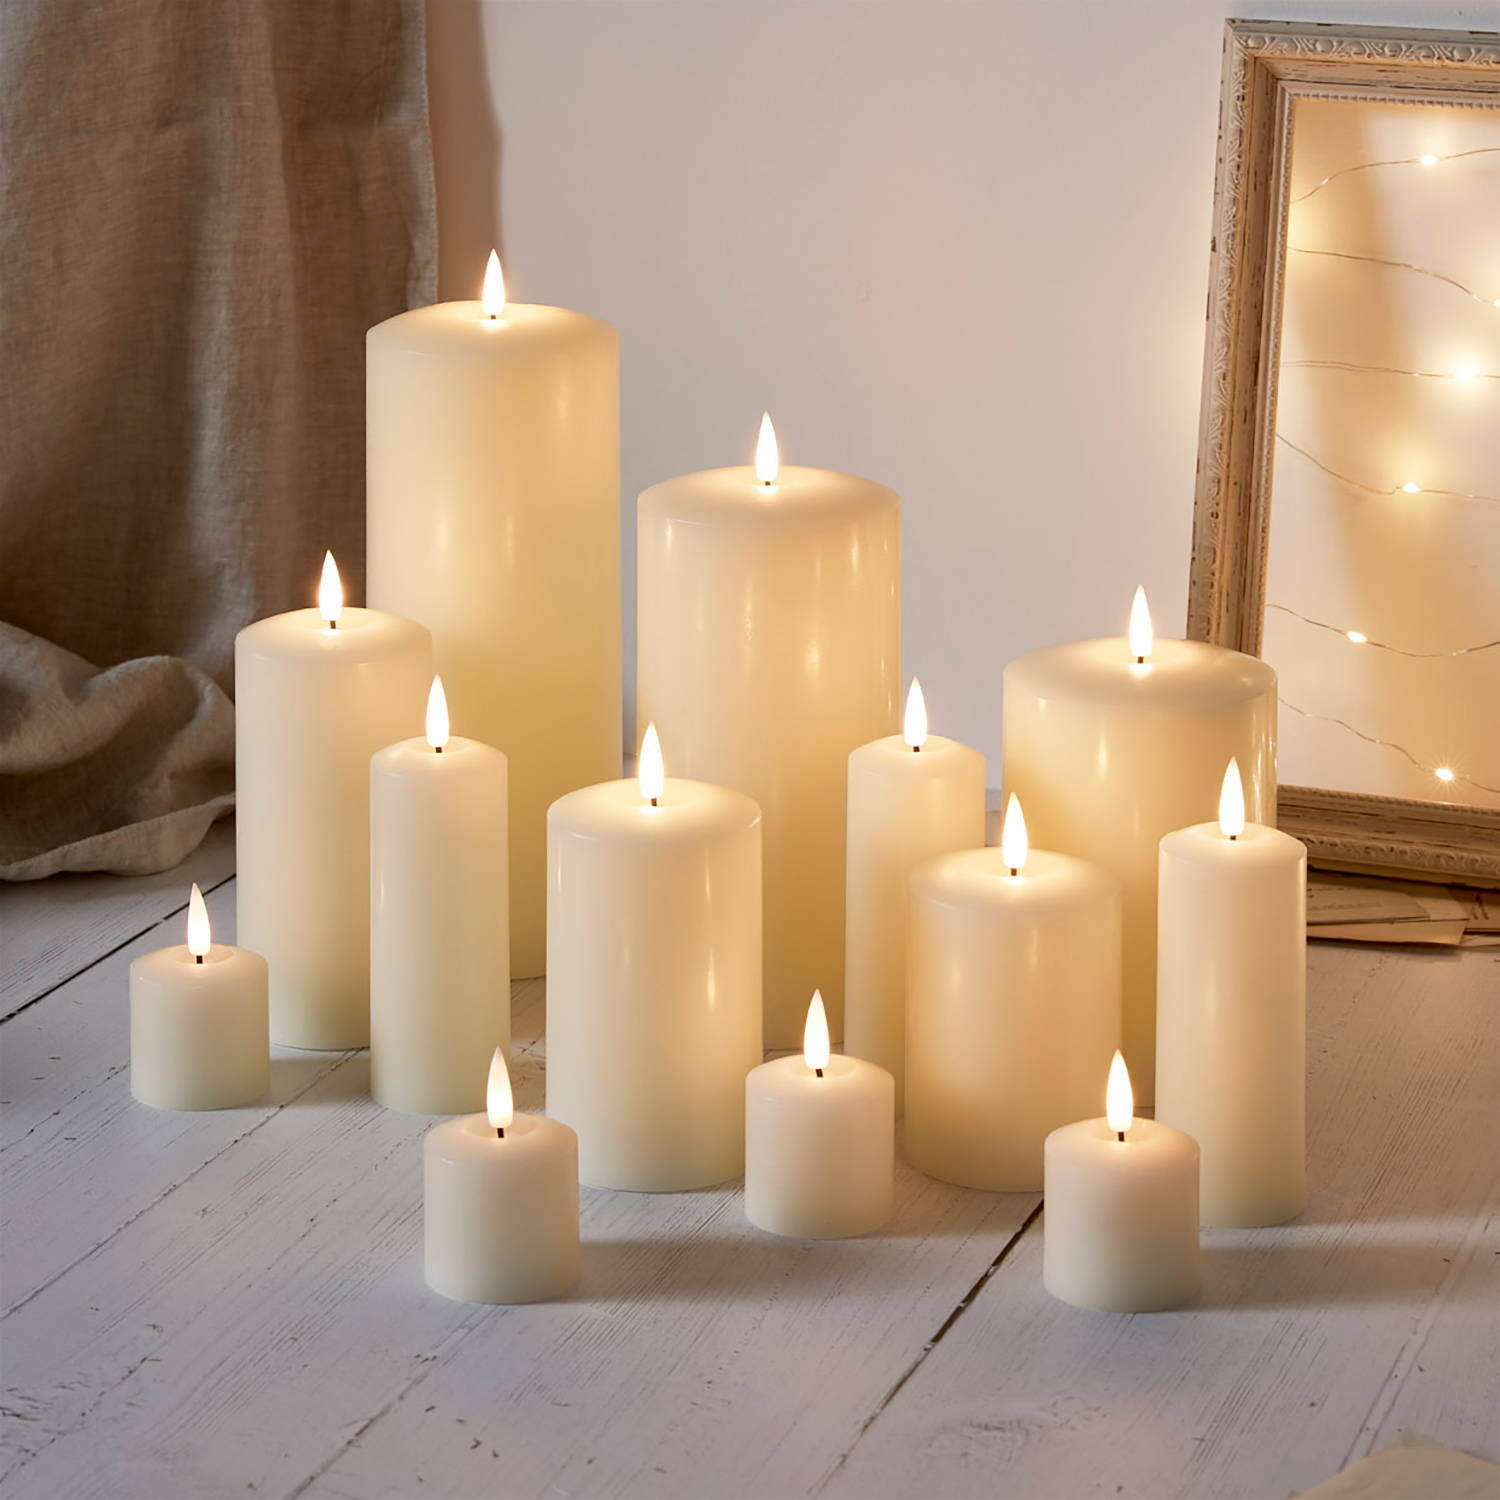 Truglow candle bundle illuminated and styled at differing heights on floor